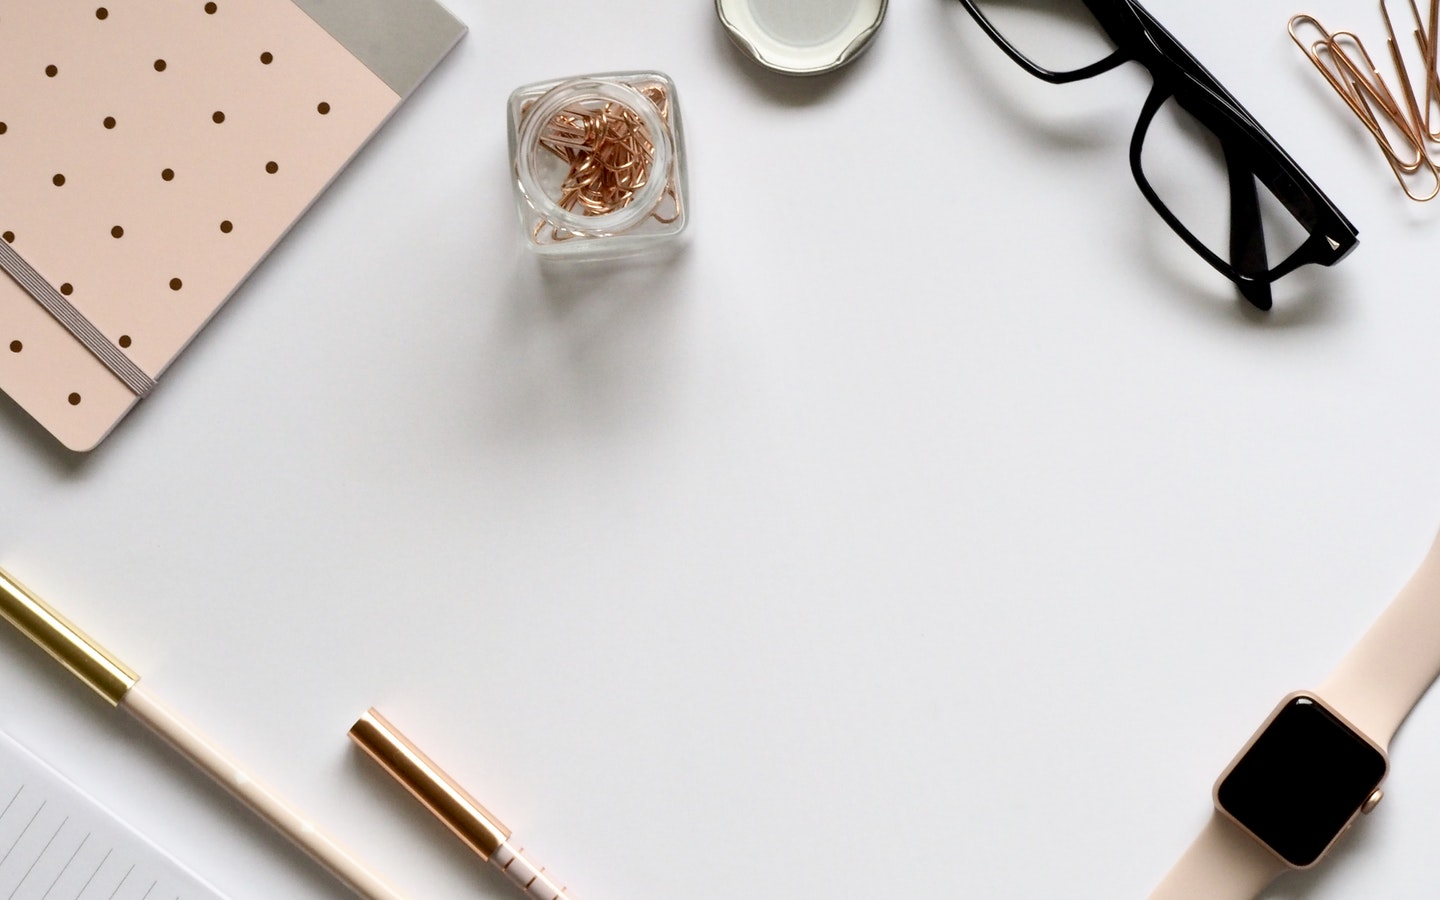 A clutter free desk is the key to working efficiently